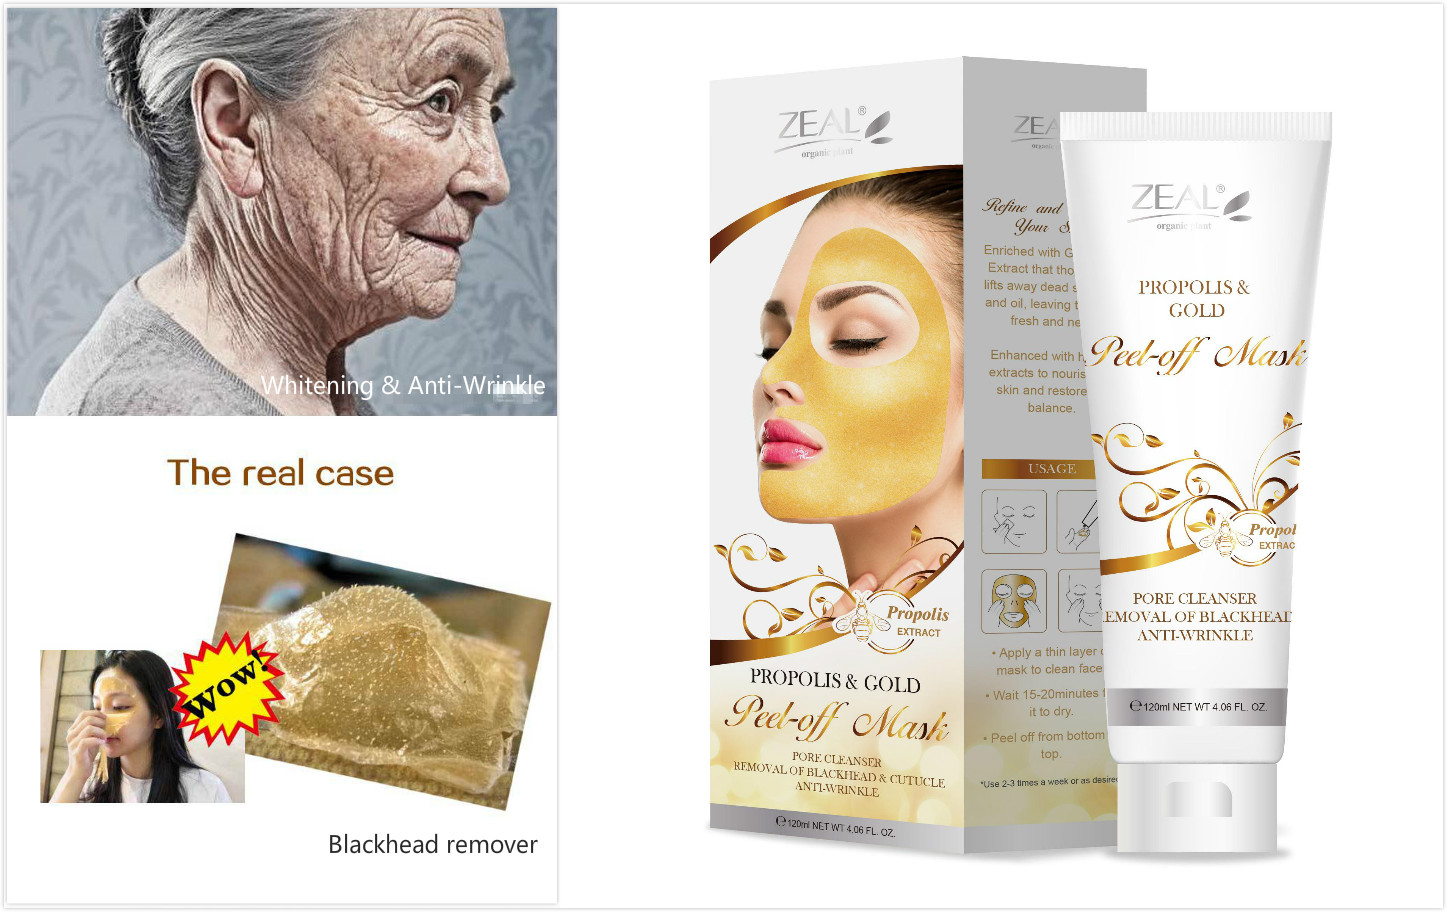 Zeal Anti Wrinkle Whitening Golden Mask Gold Collagen Peel off Facial Mask